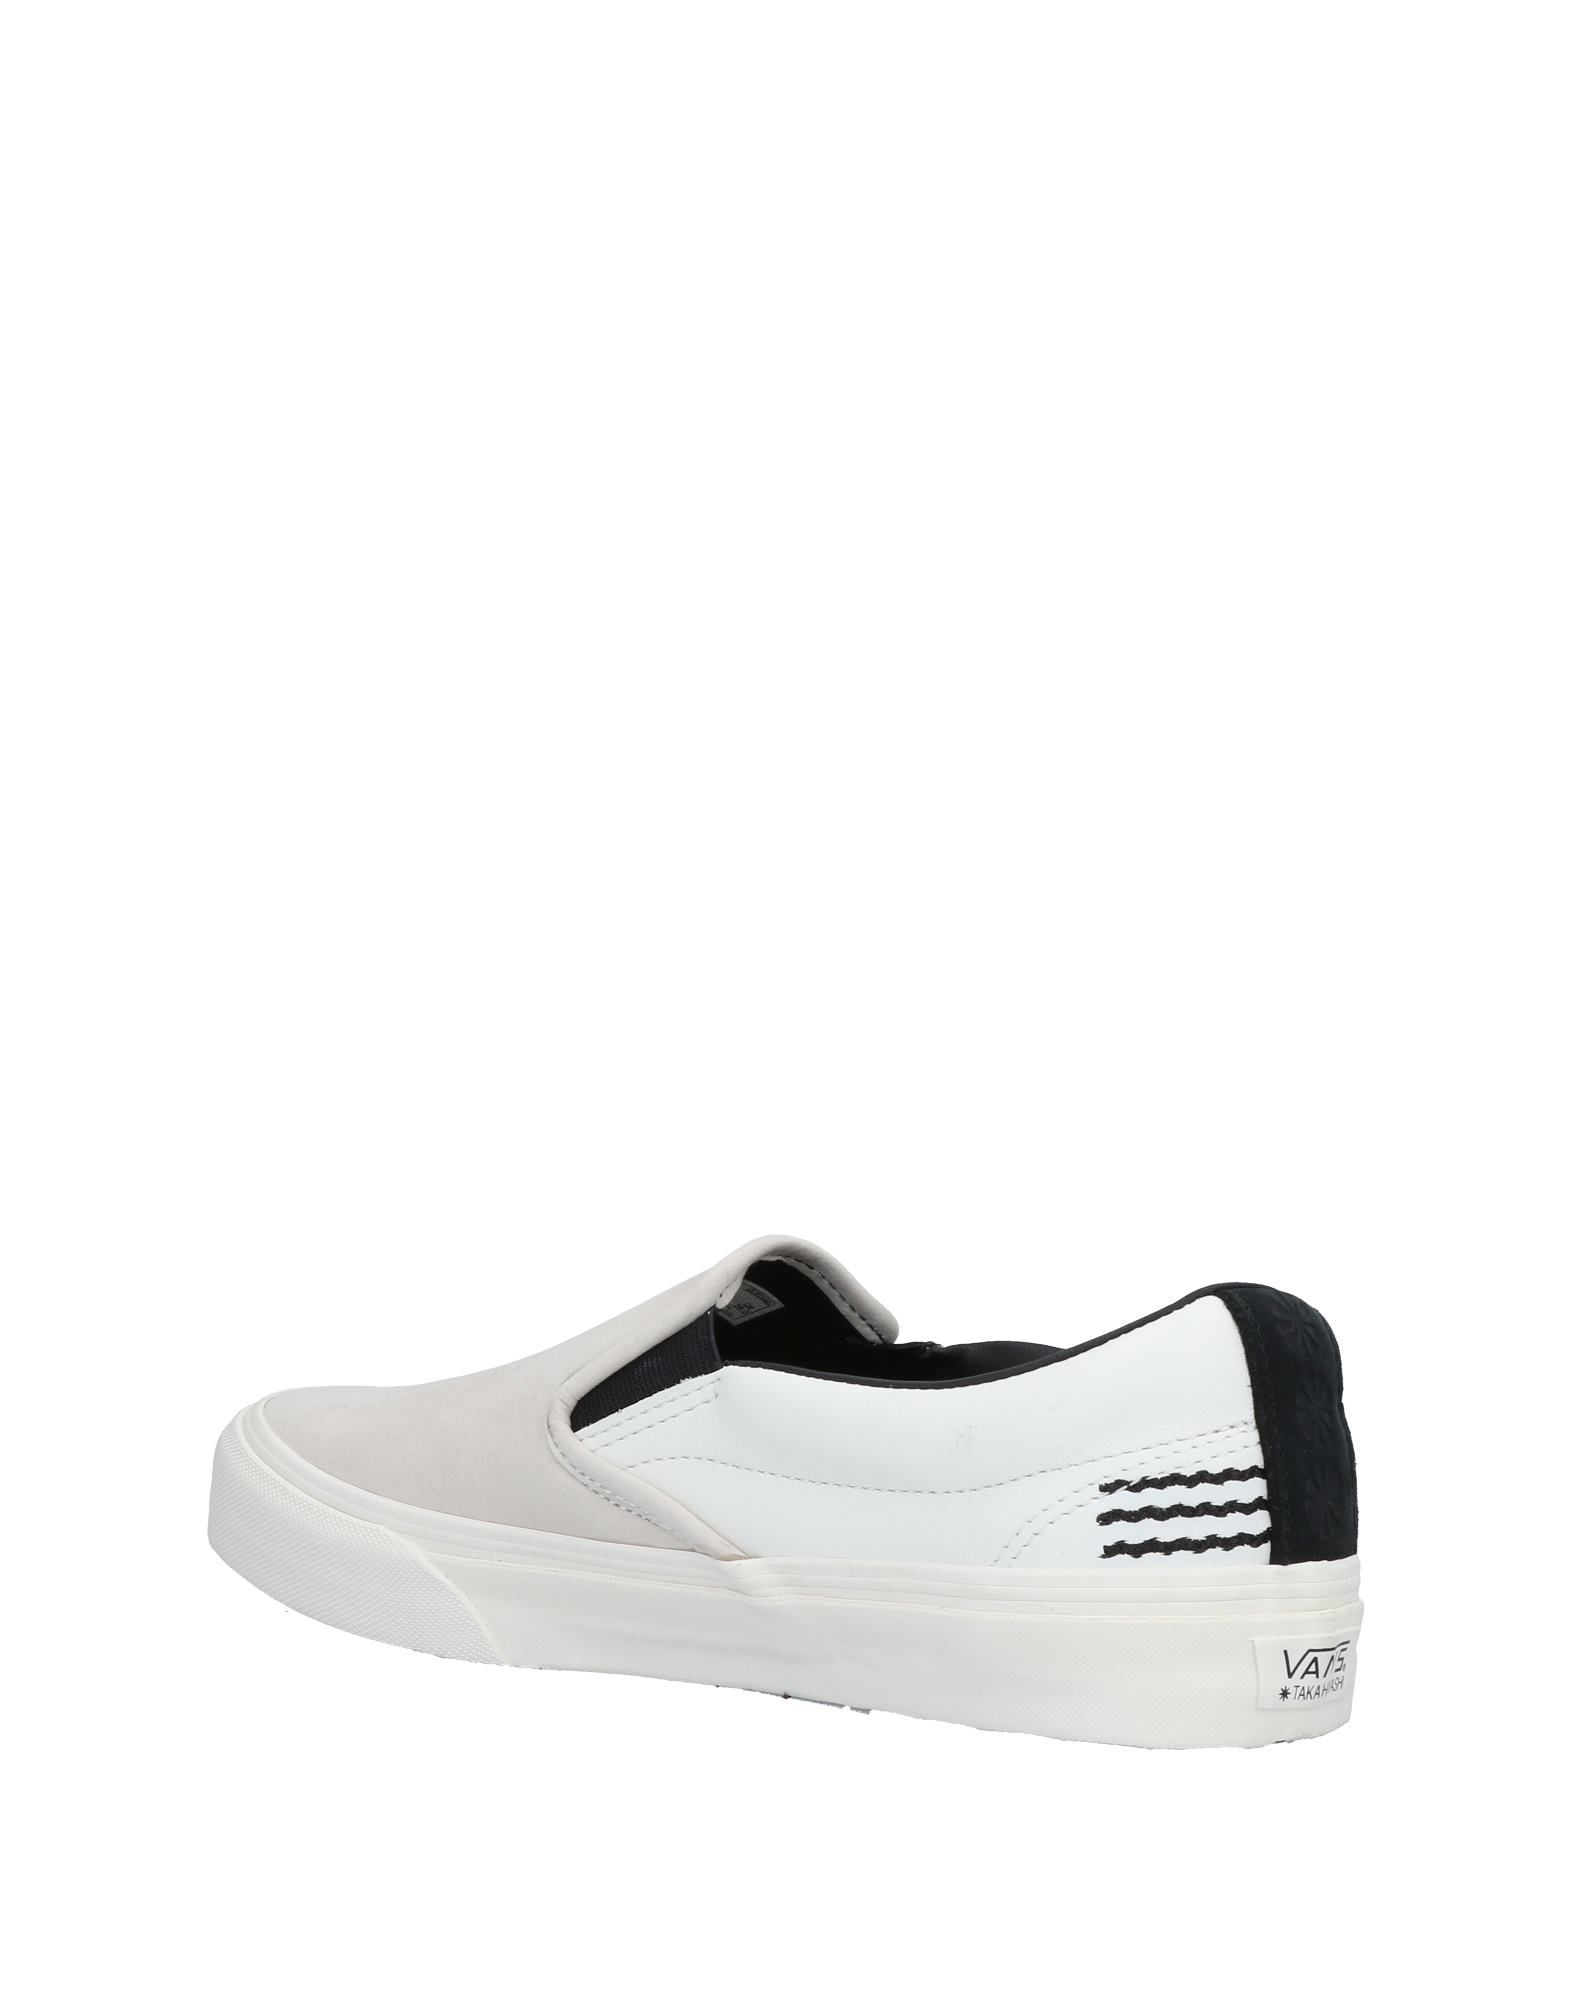 Taka Hayashi For Vault By By By Vans Sneakers - Men Taka Hayashi For Vault By Vans Sneakers online on  United Kingdom - 11494656WP 3e0597